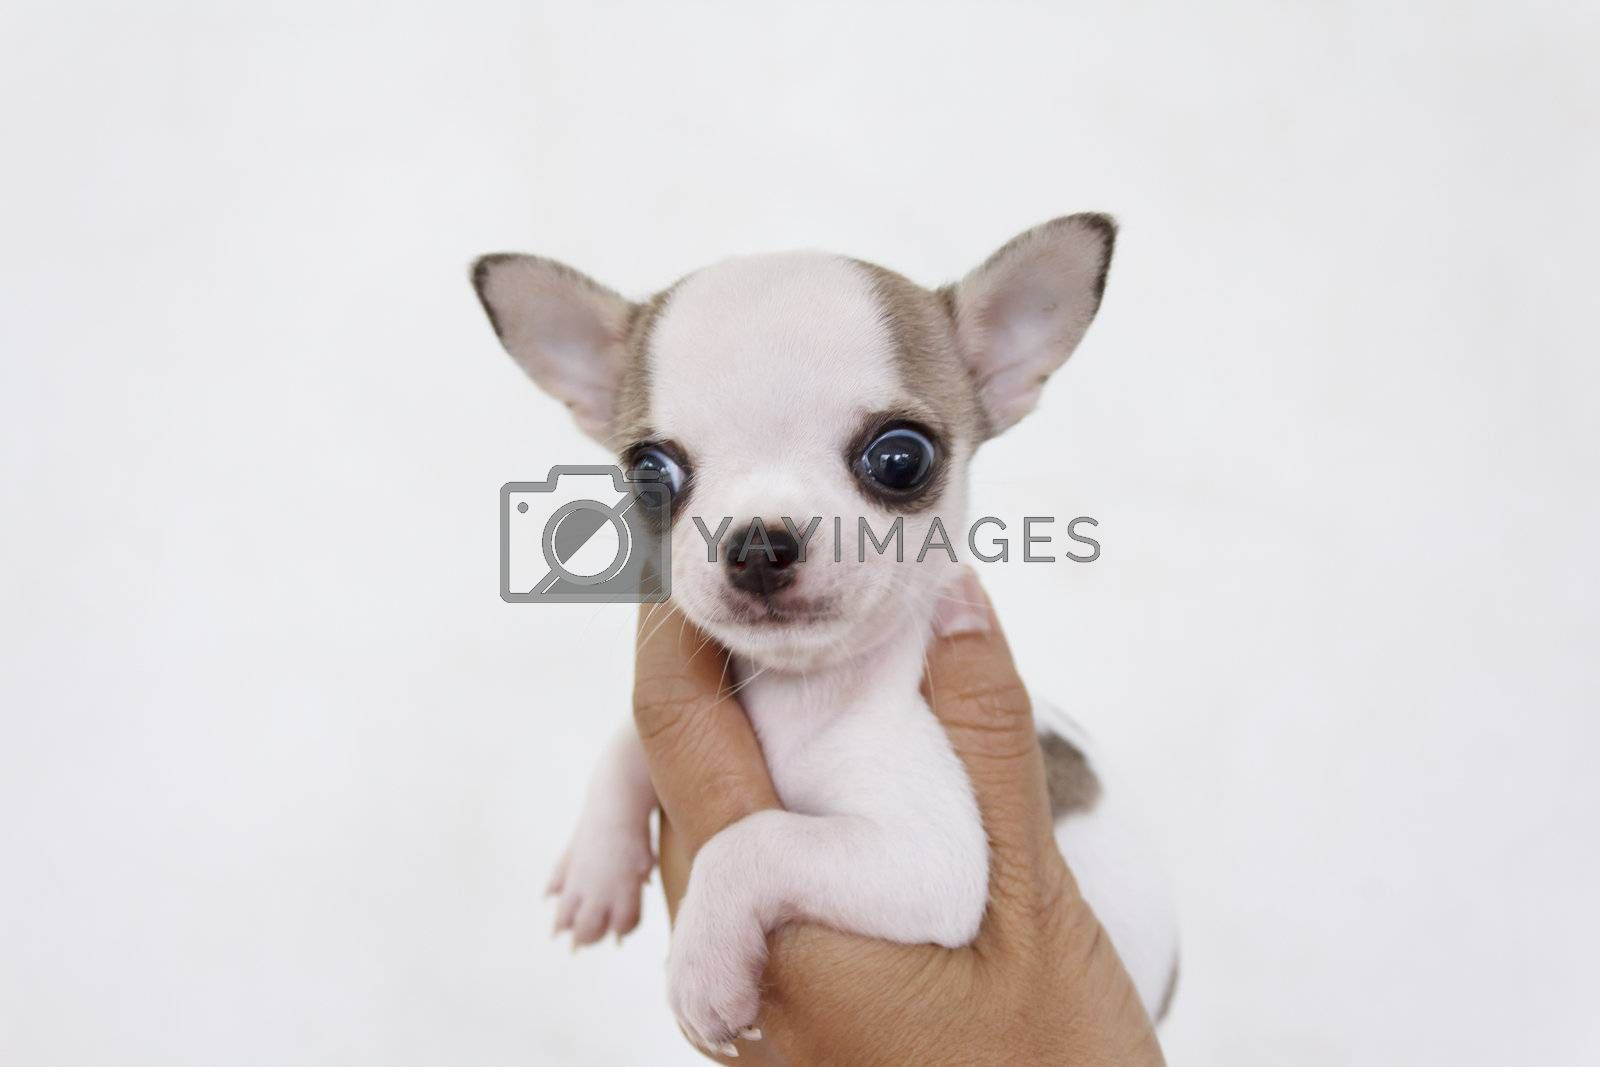 Chihuahua puppy six weeks old holding in human hand